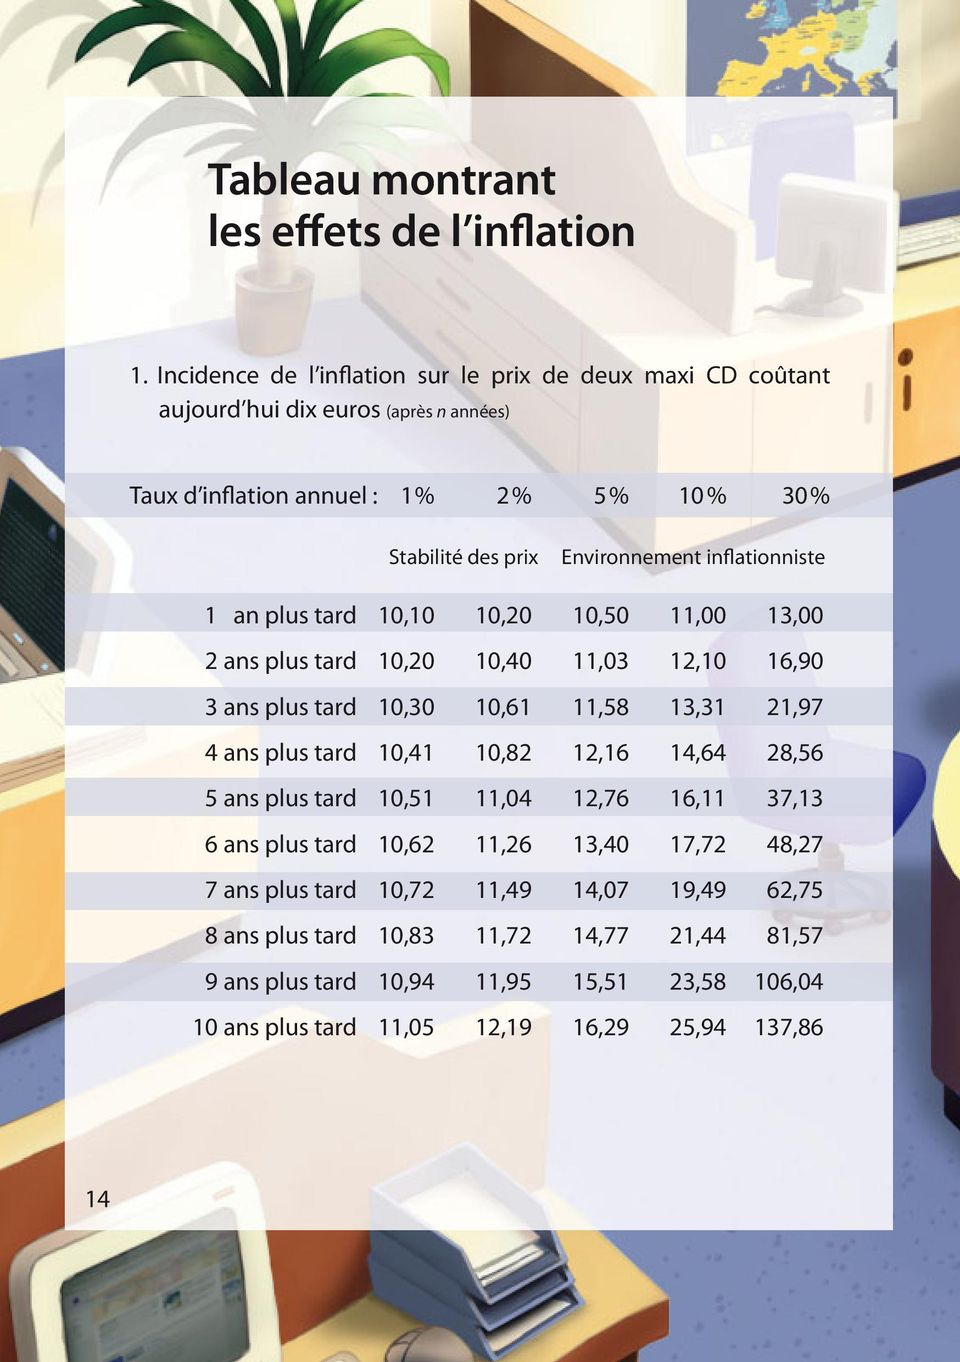 inflationniste 1 an plus tard 10,10 10,20 10,50 11,00 13,00 2 ans plus tard 10,20 10,40 11,03 12,10 16,90 3 ans plus tard 10,30 10,61 11,58 13,31 21,97 4 ans plus tard 10,41